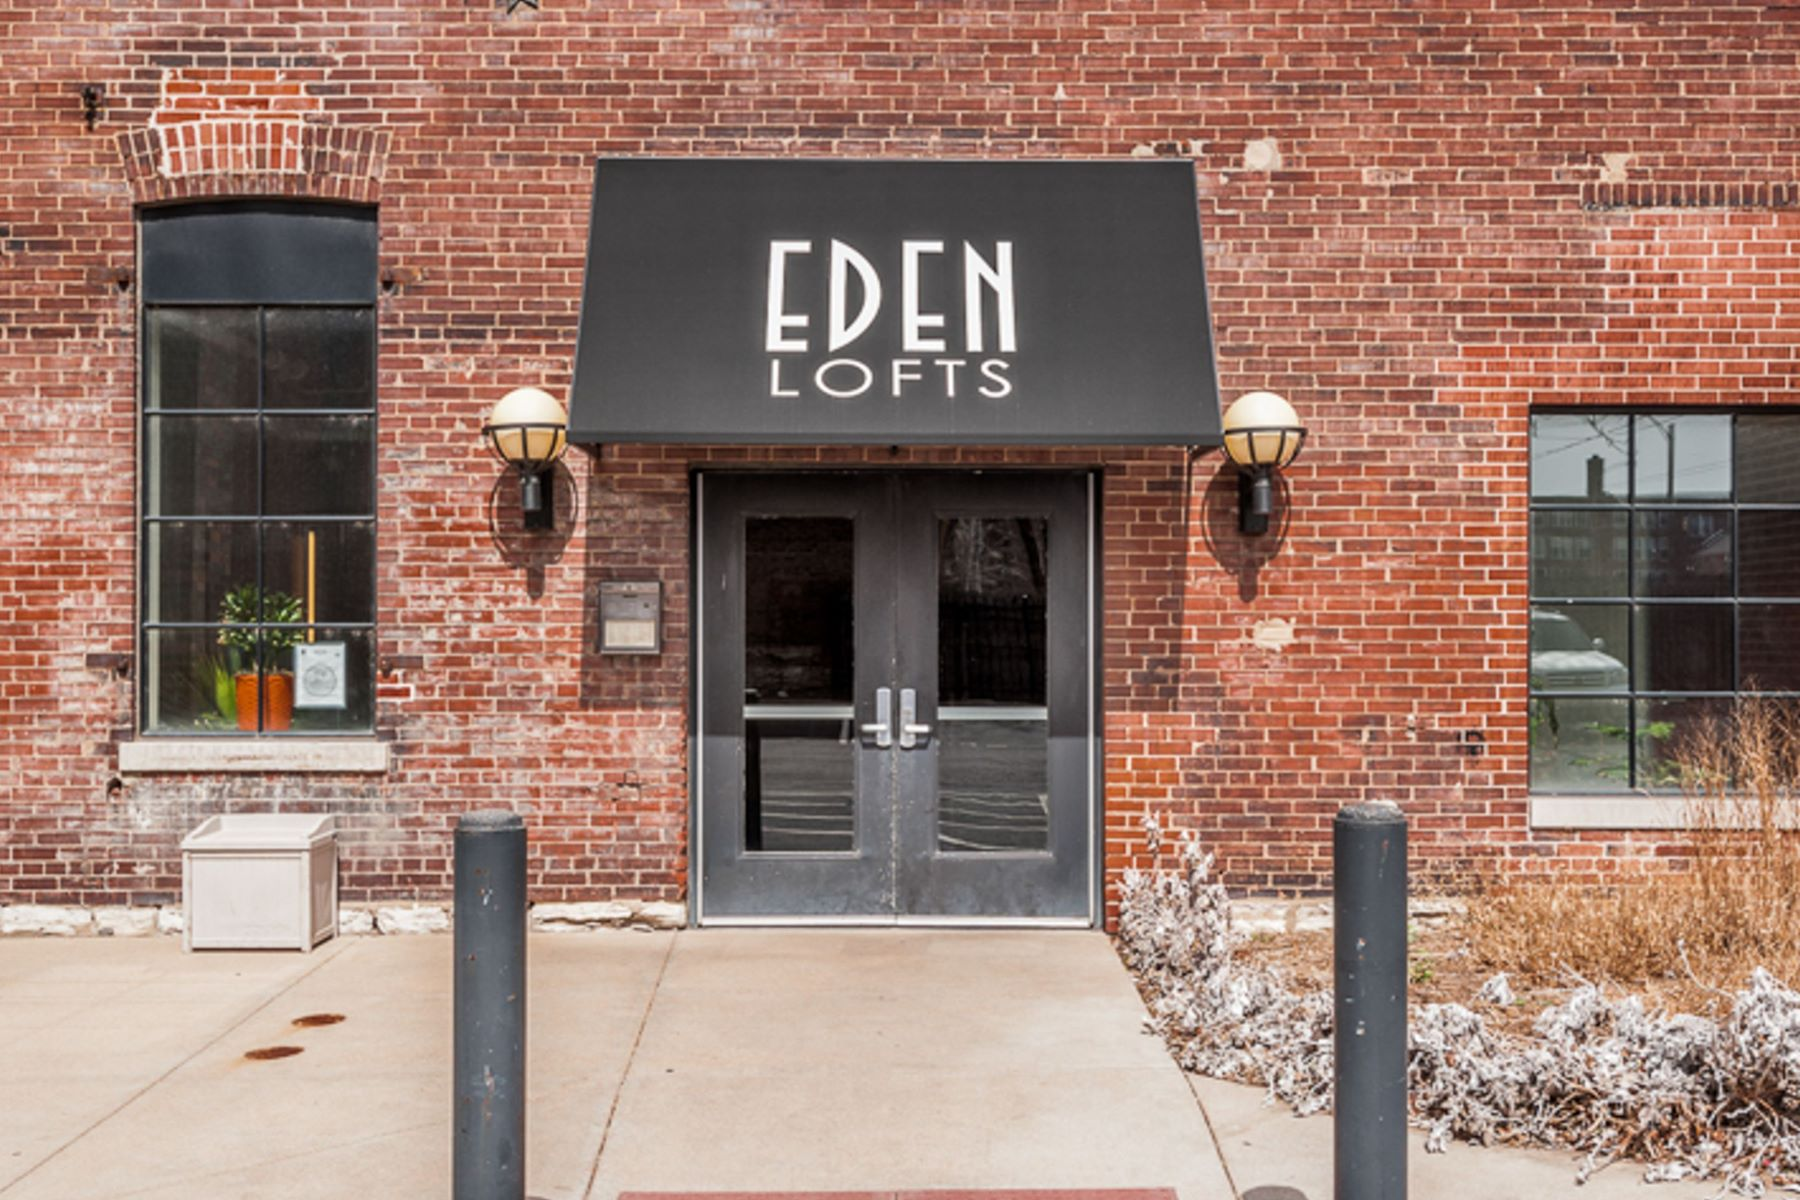 Additional photo for property listing at Eden Lofts 1720 Chouteau #204 St. Louis, Missouri 63103 United States